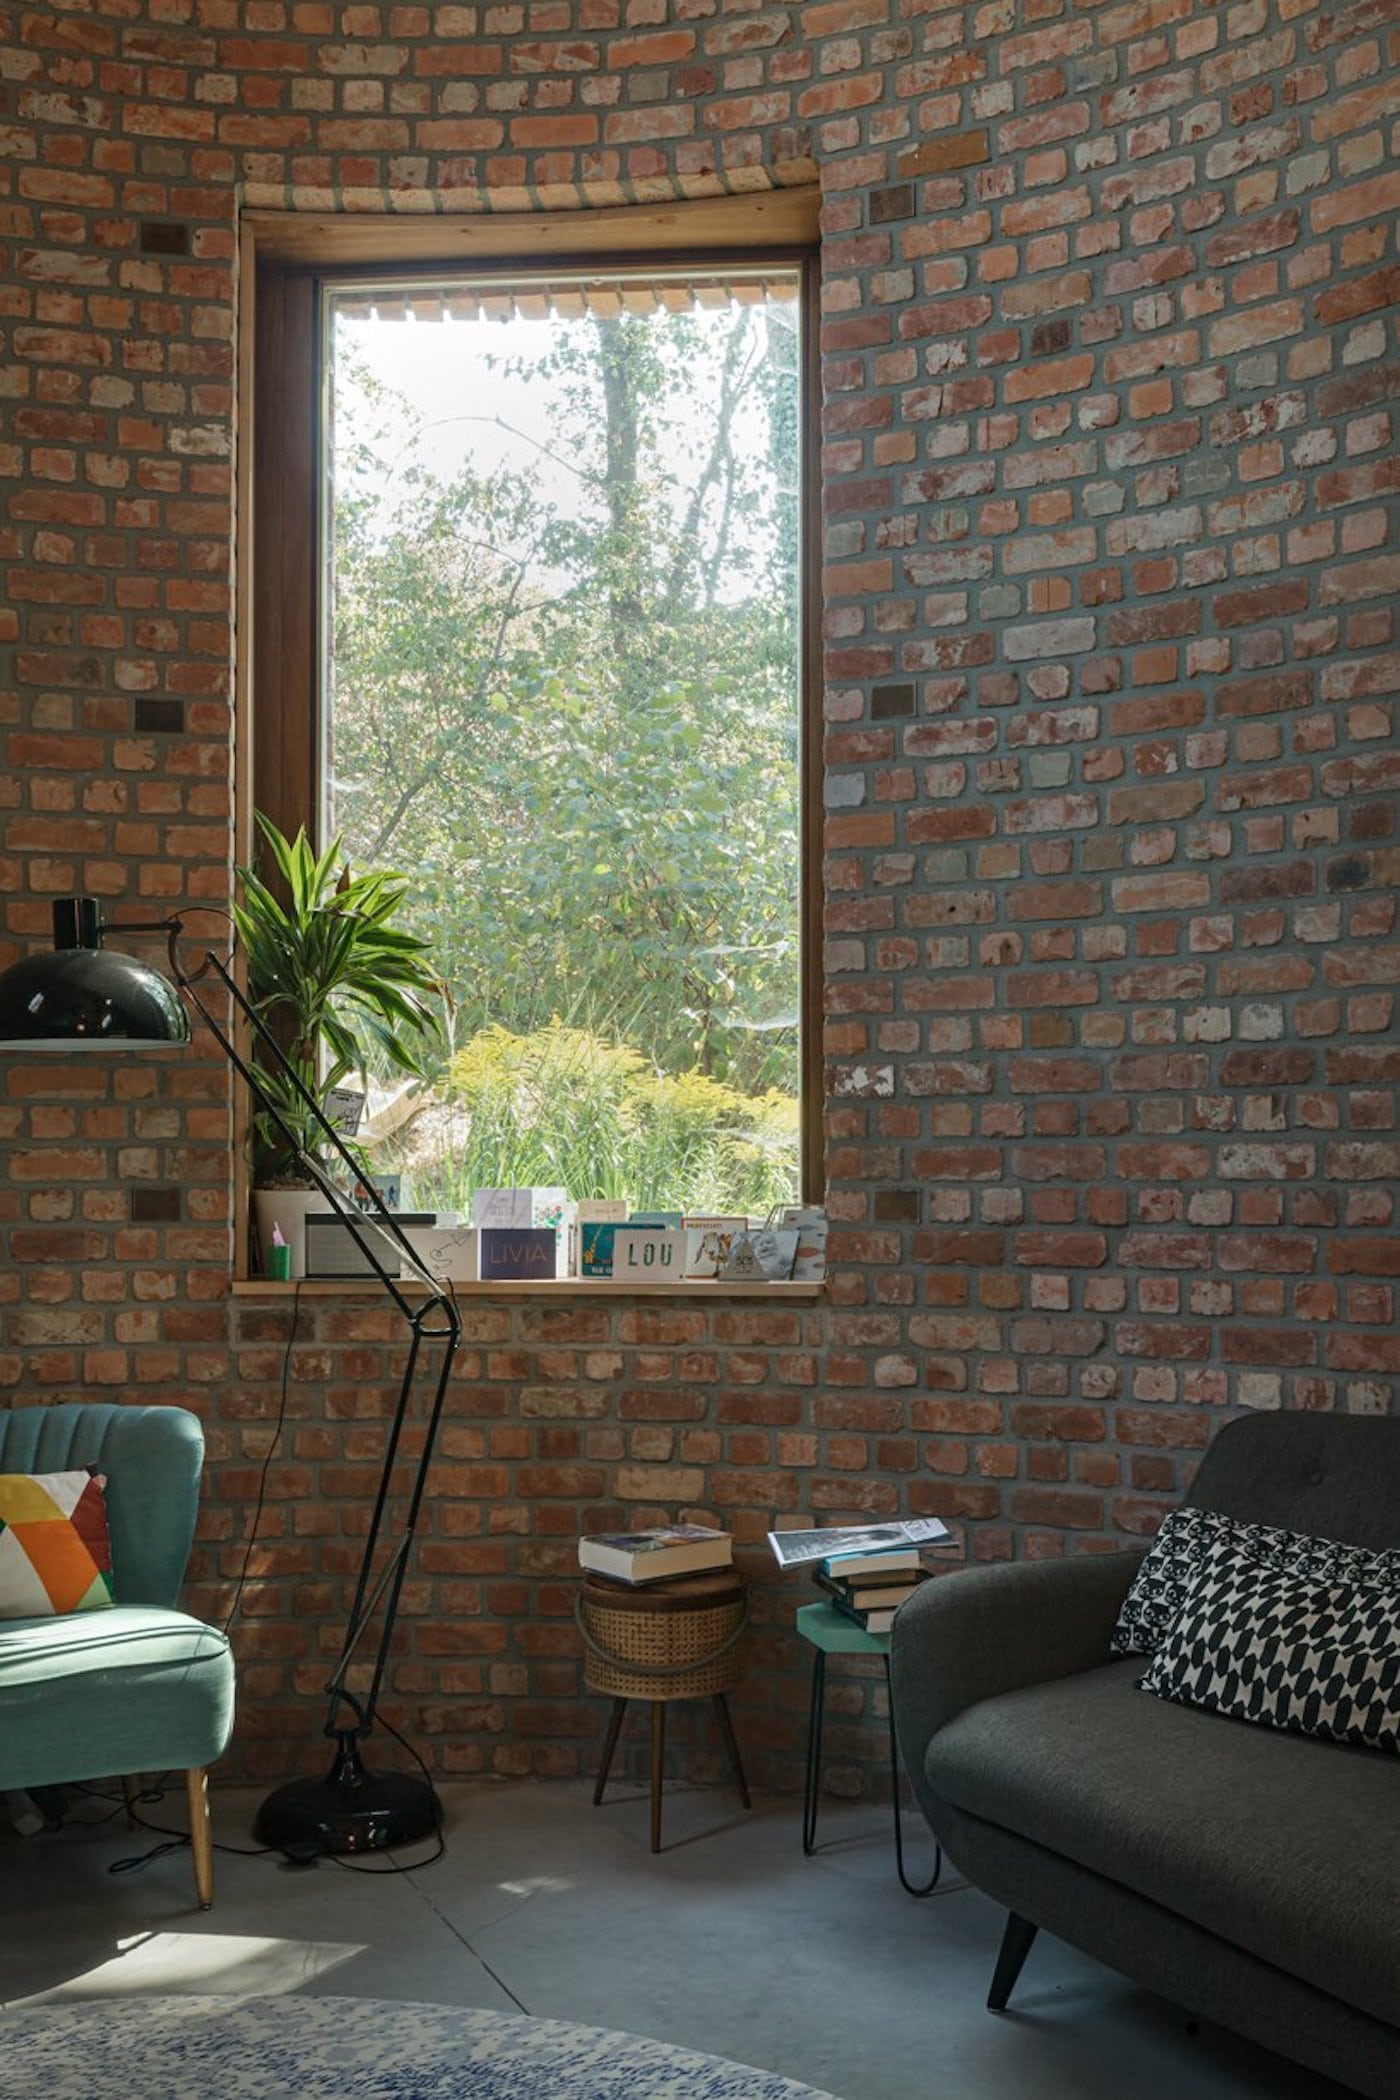 Close up view of lounge room with recycled brick wall